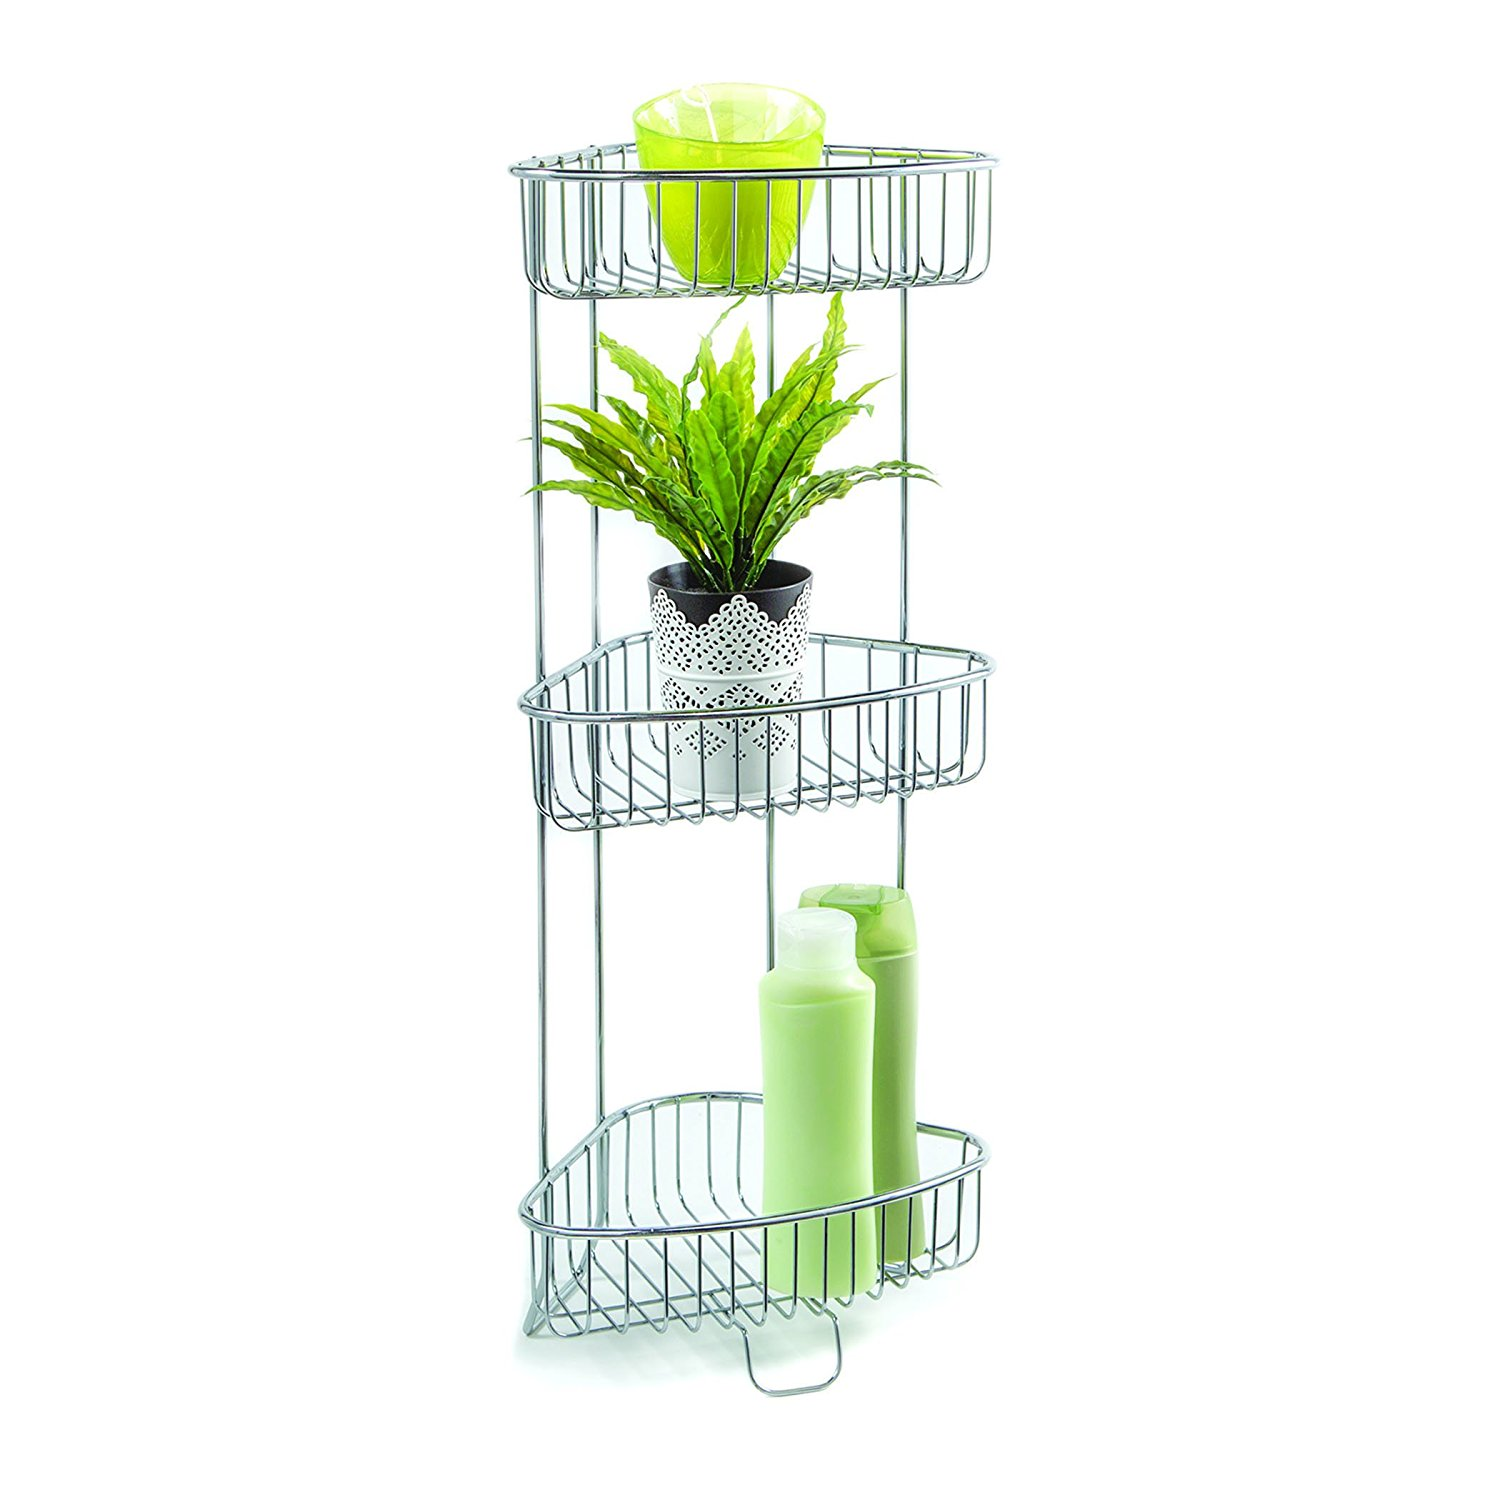 Cheap Bathroom Stand, find Bathroom Stand deals on line at Alibaba.com